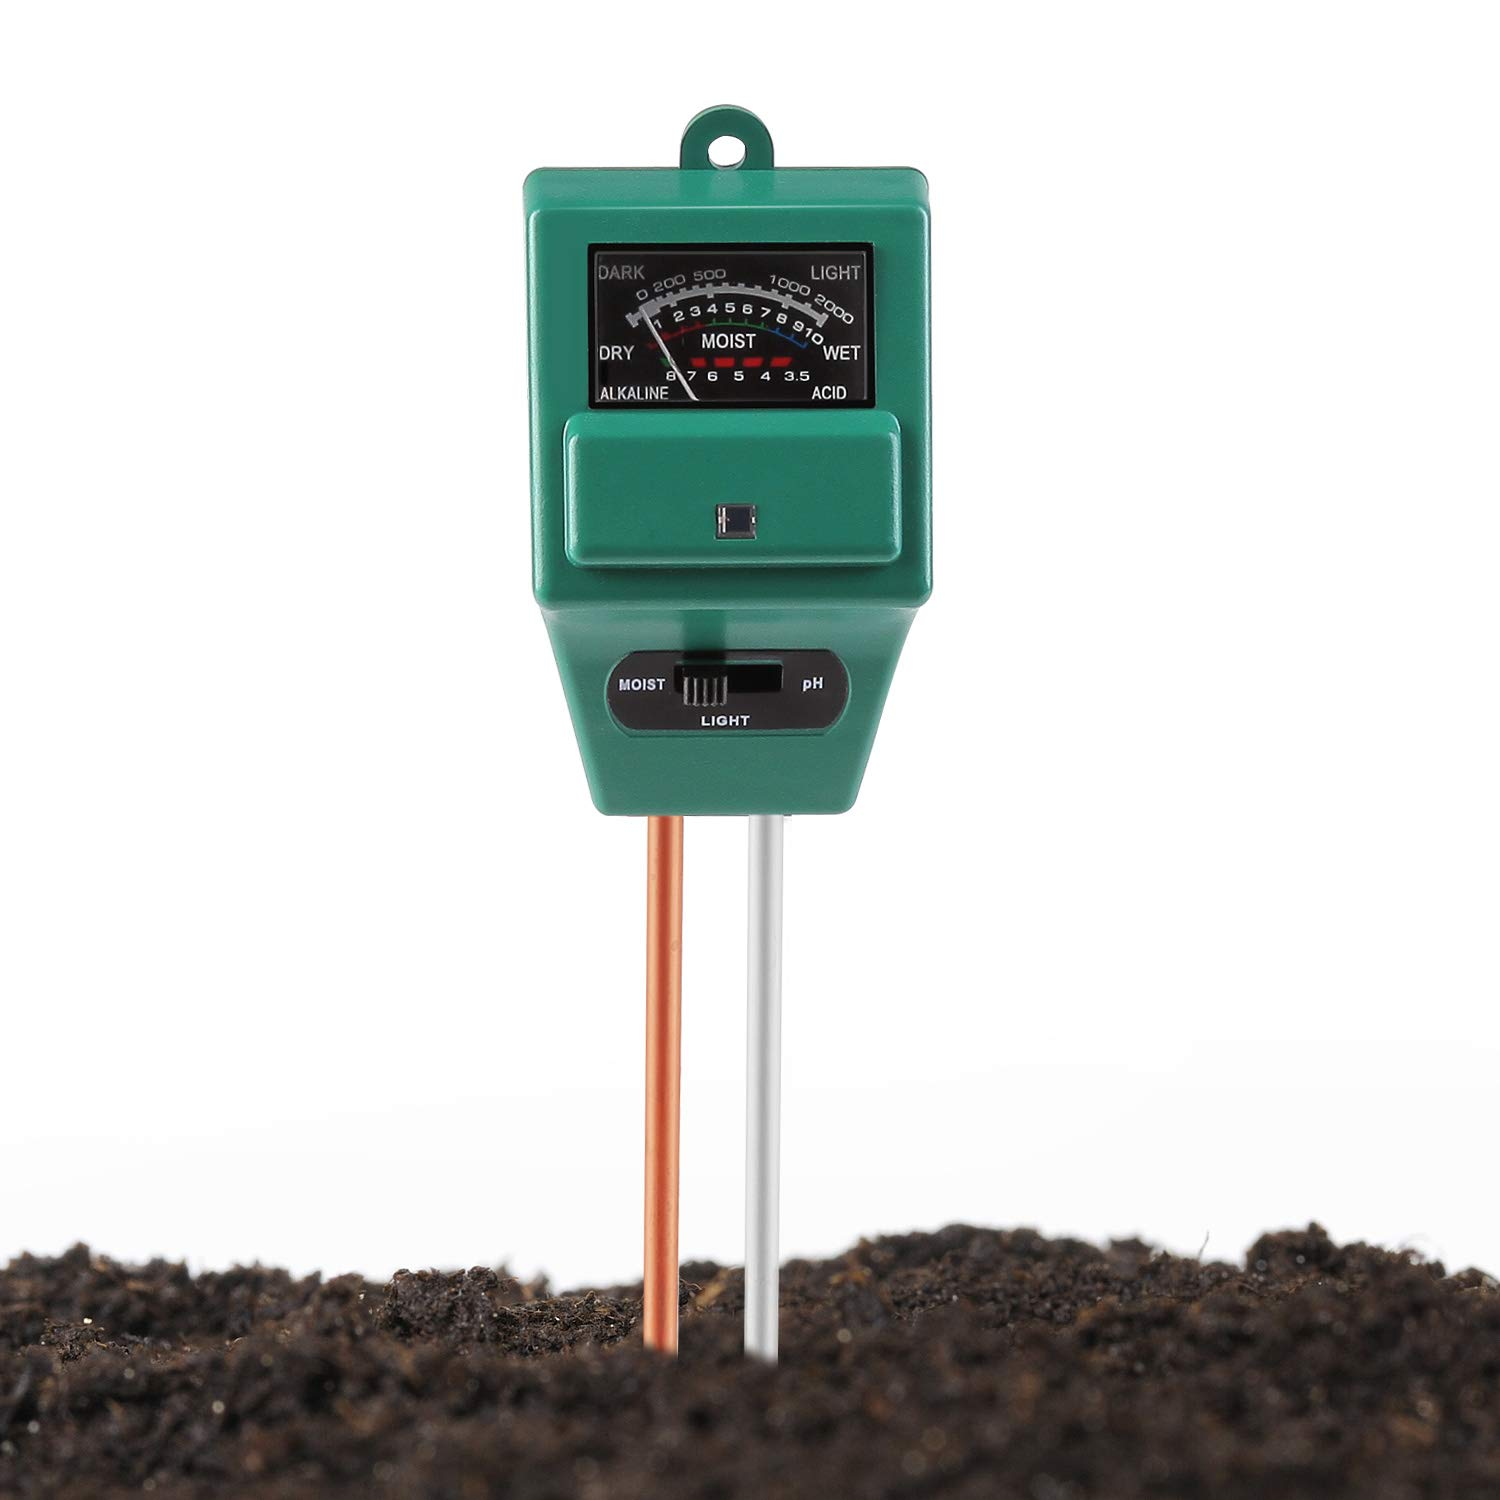 Jellas Soil pH Meter, 3-in-1 Moisture Sensor Meter/Sunlight/pH Soil Test Kits Test Function Home Garden, Plants, Farm, Indoor/Outdoor Use JLMM02